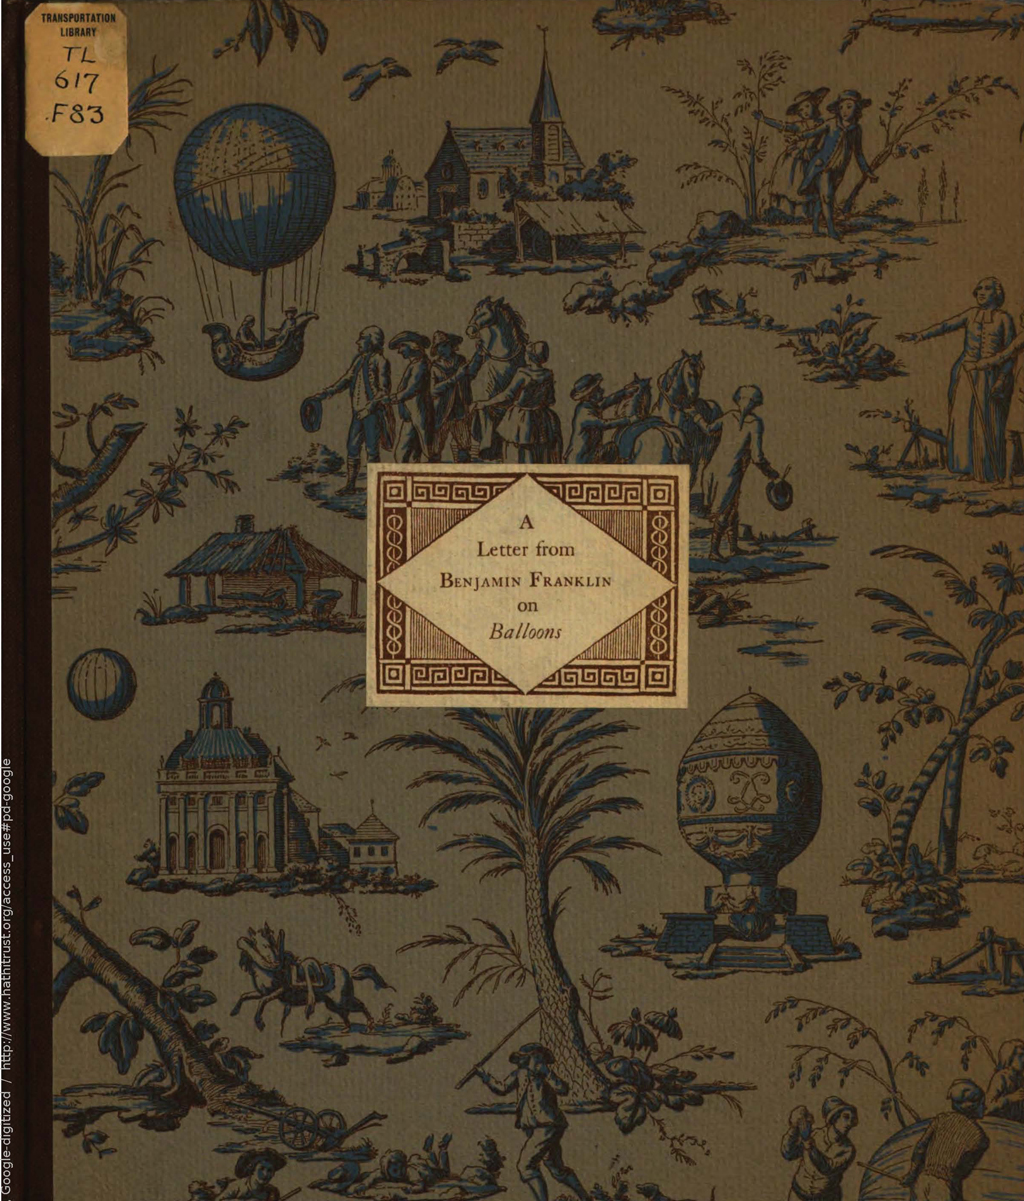 Benjamin Franklin's Letter on Balloons. Cover design by W.A. Dwiggins. Printed by The Merrymount Press.